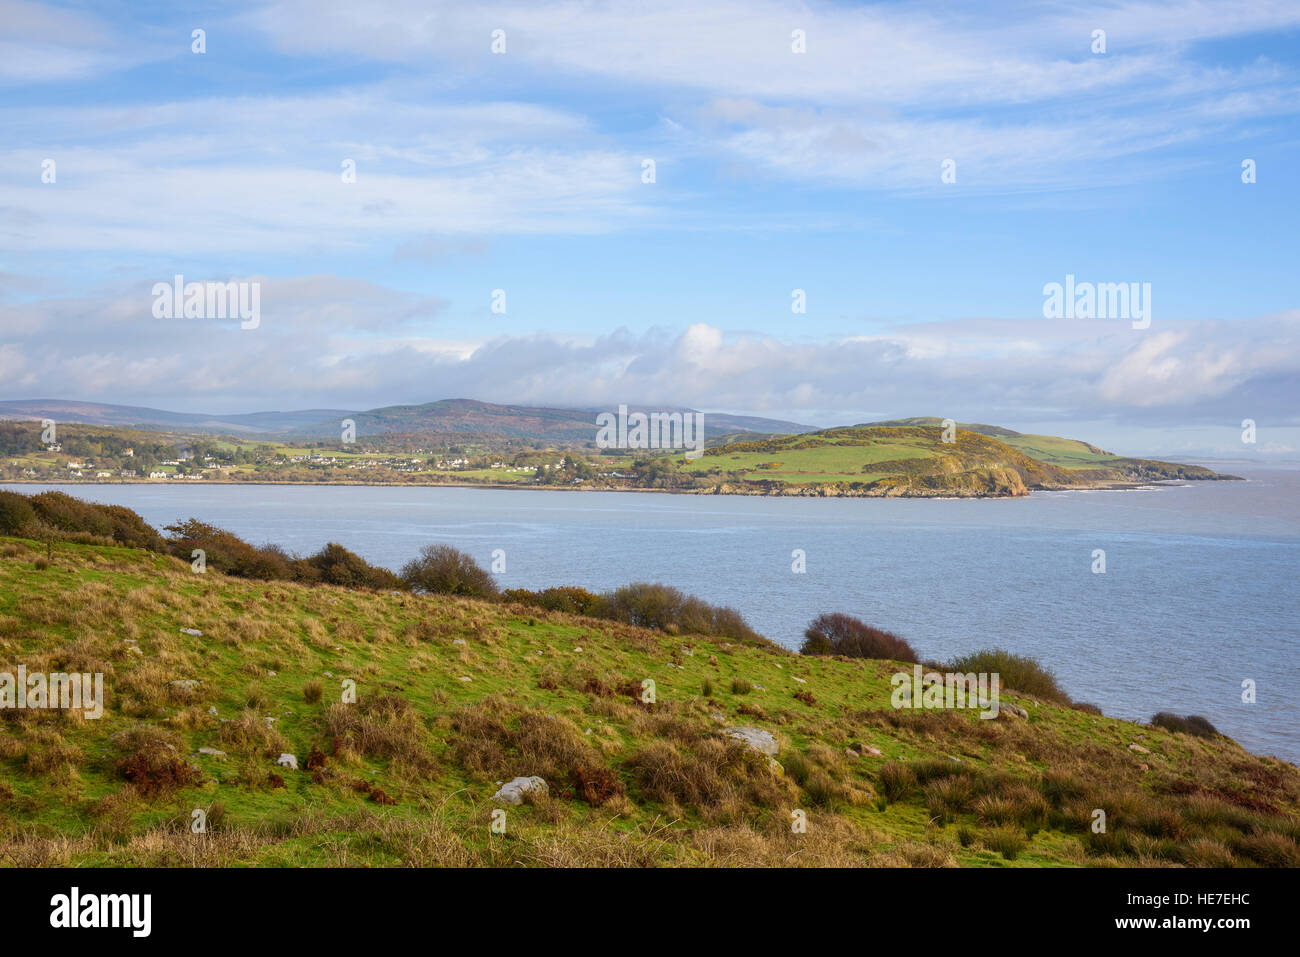 Almorness Point de Firth rugueux, Solway Firth, Dumfries et Galloway, Écosse Photo Stock